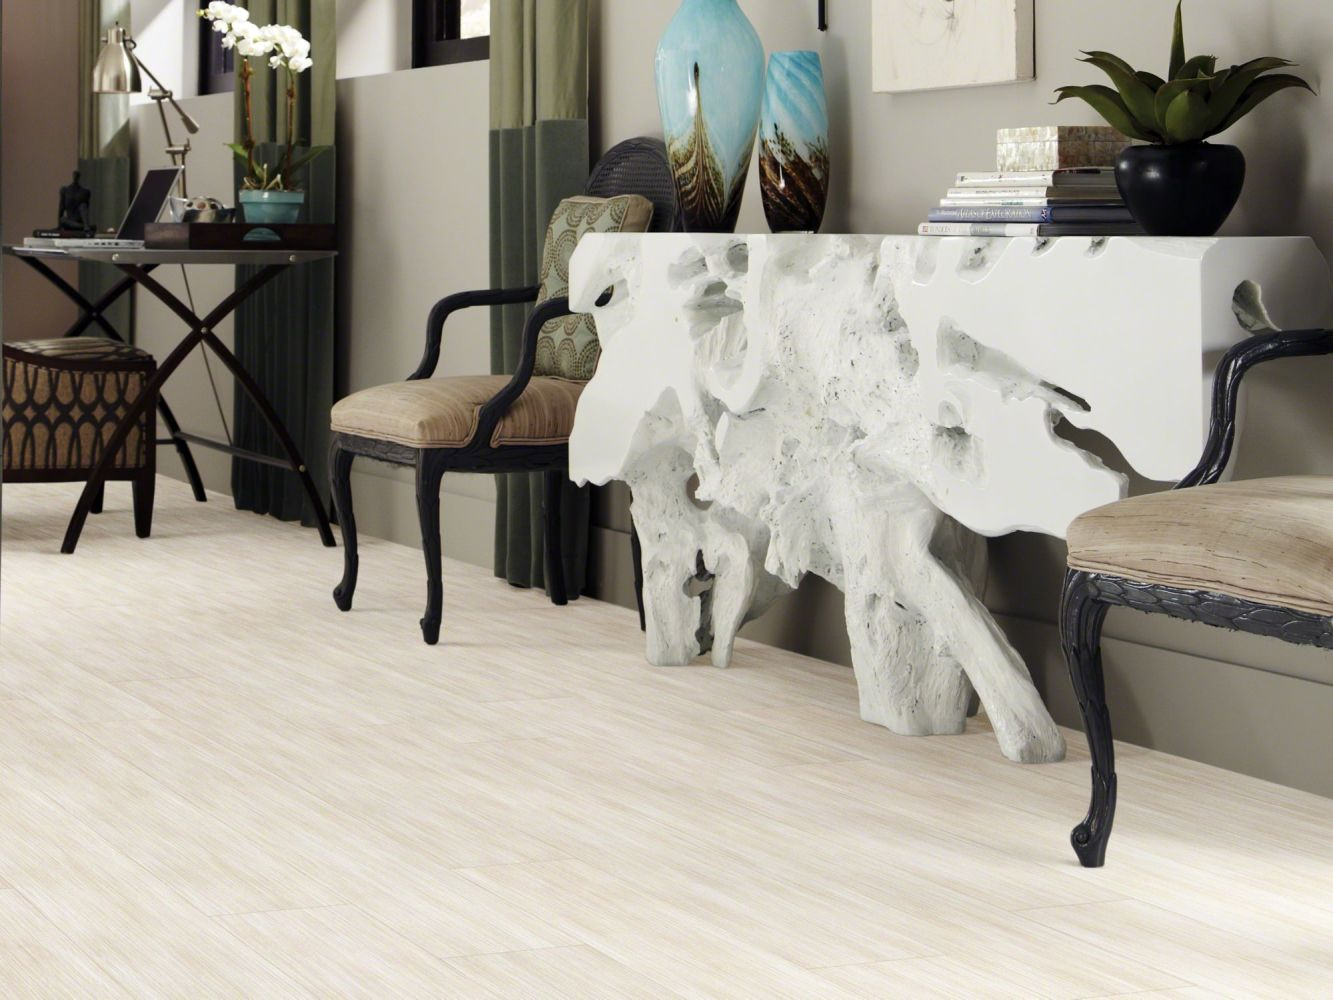 Shaw Floors Resilient Property Solutions Modernality 6 Plank Bistro 00271_VPS41